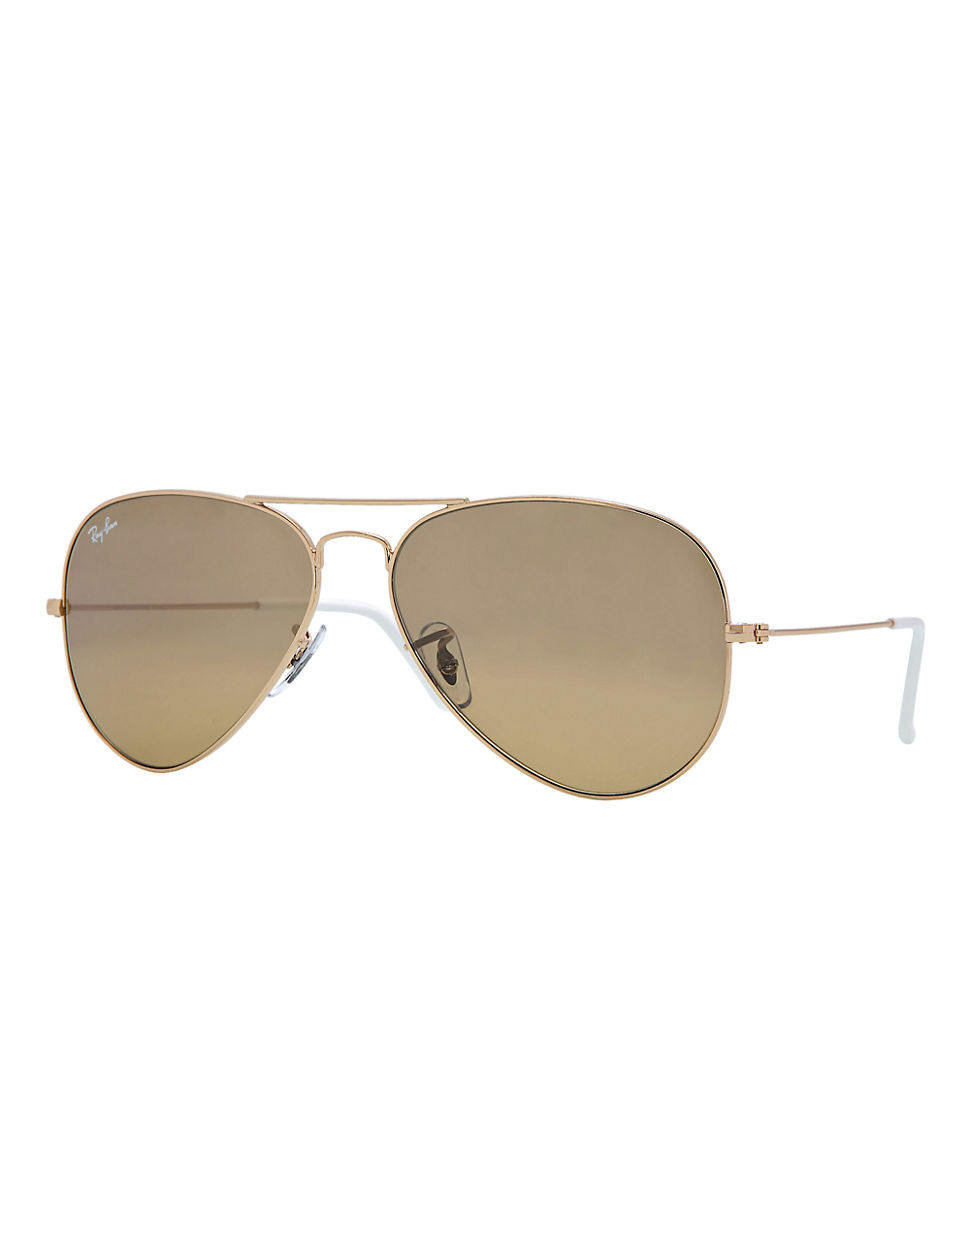 ray ban classic aviator sunglasses in gold lyst. Black Bedroom Furniture Sets. Home Design Ideas